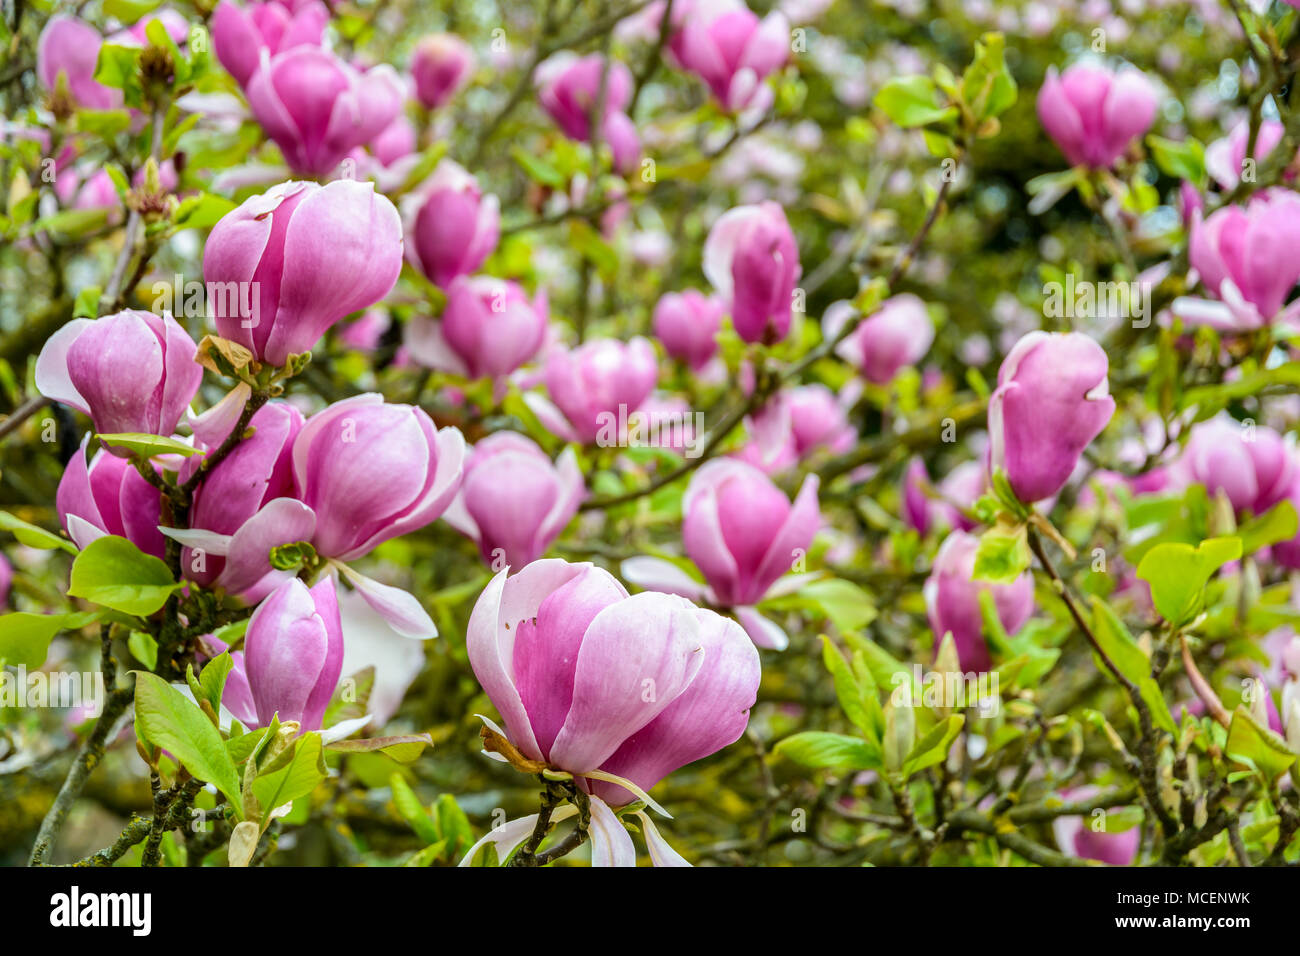 Big purple flowers stock photos big purple flowers stock images close up view of the big purple flowers of a magnolia with a shallow depth mightylinksfo